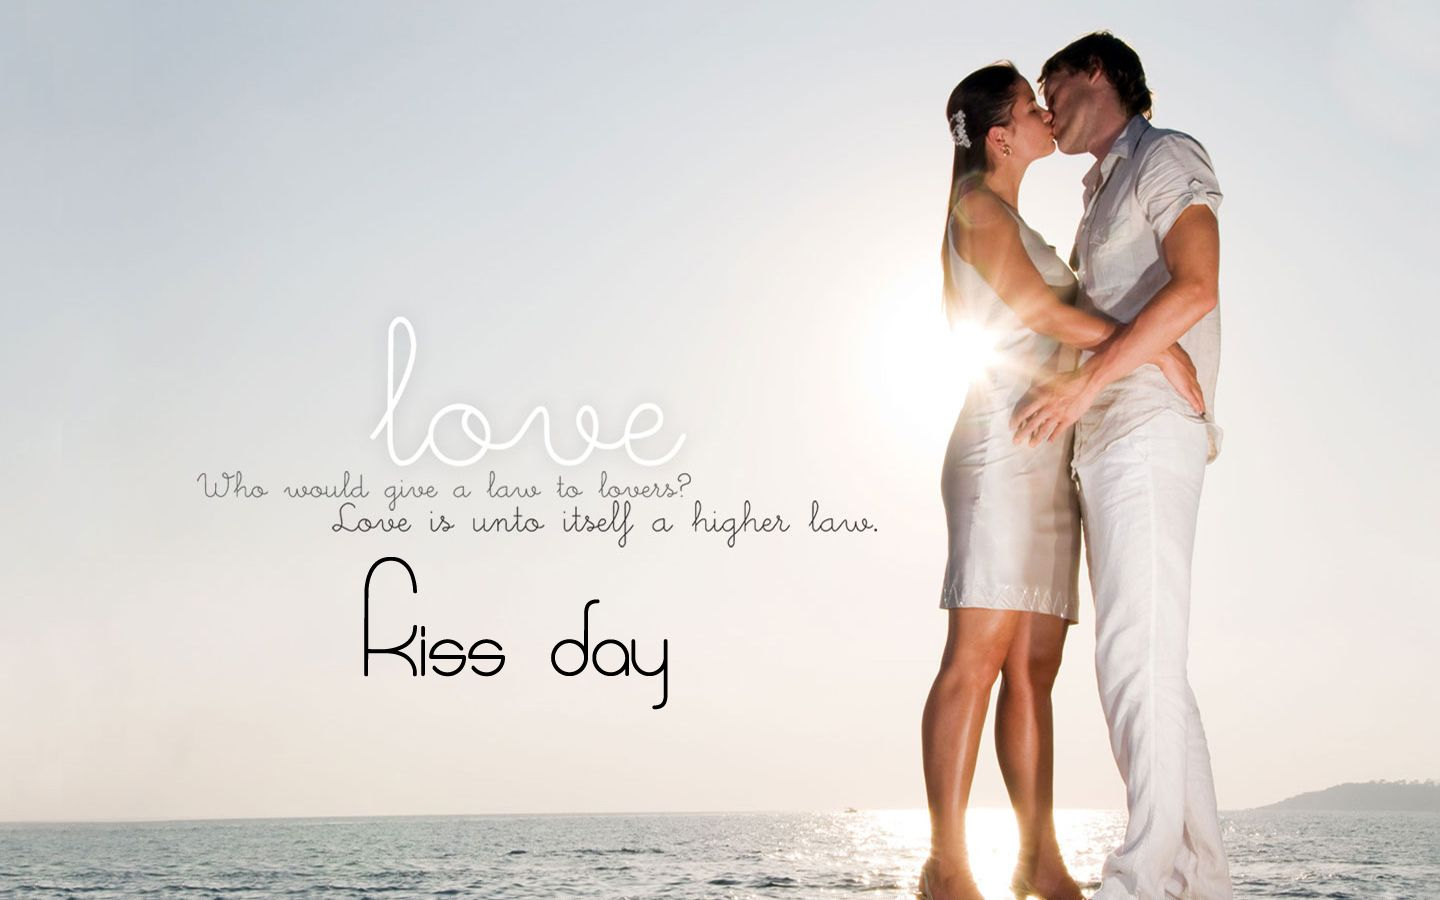 kiss day Hd Wallpapers 1